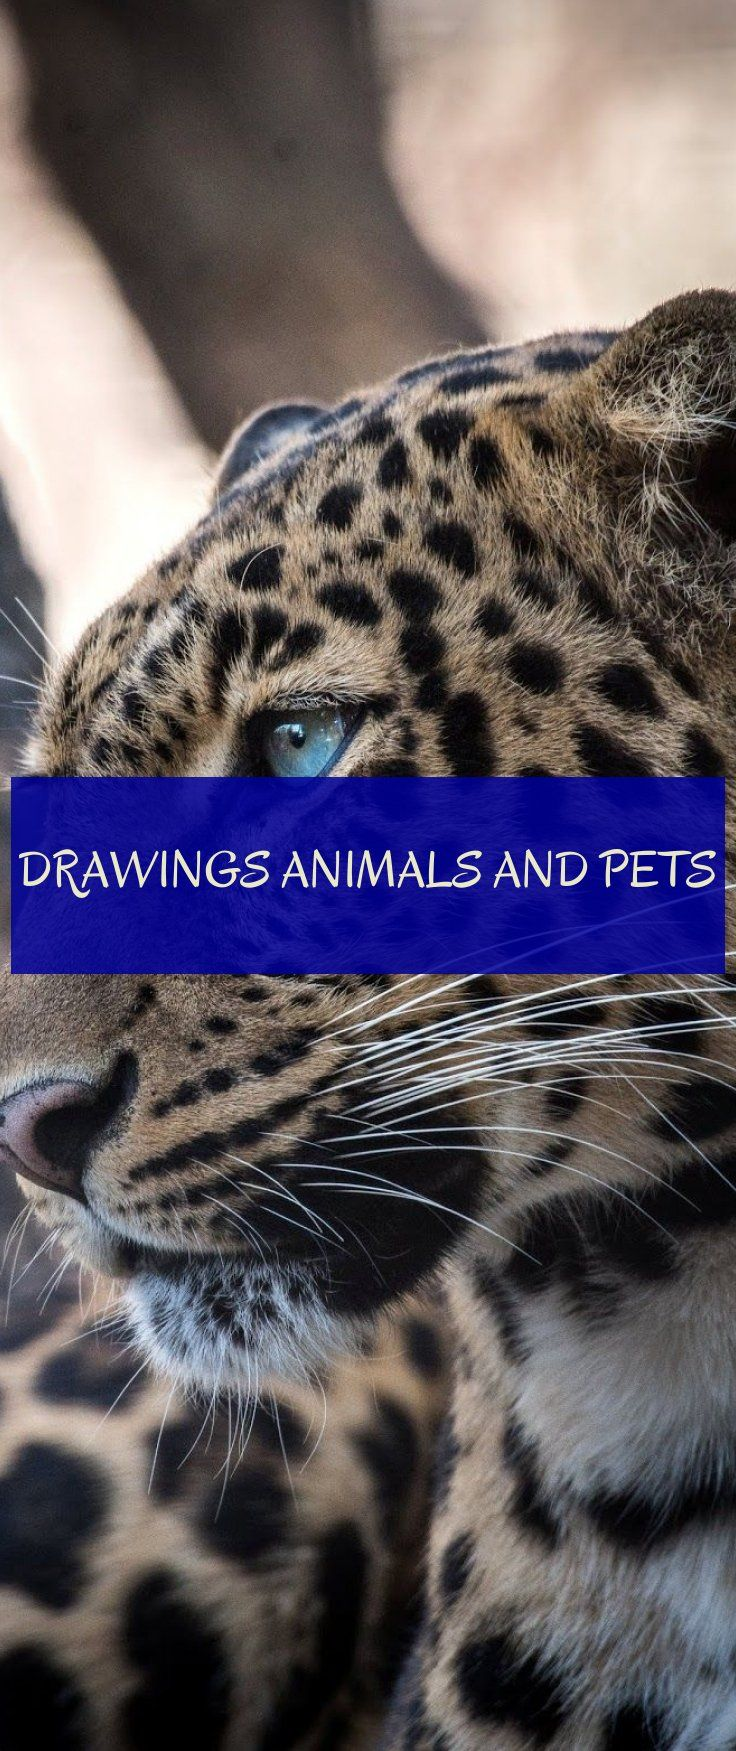 Dessins Animaux Et Animaux Drawings Animals And Pets